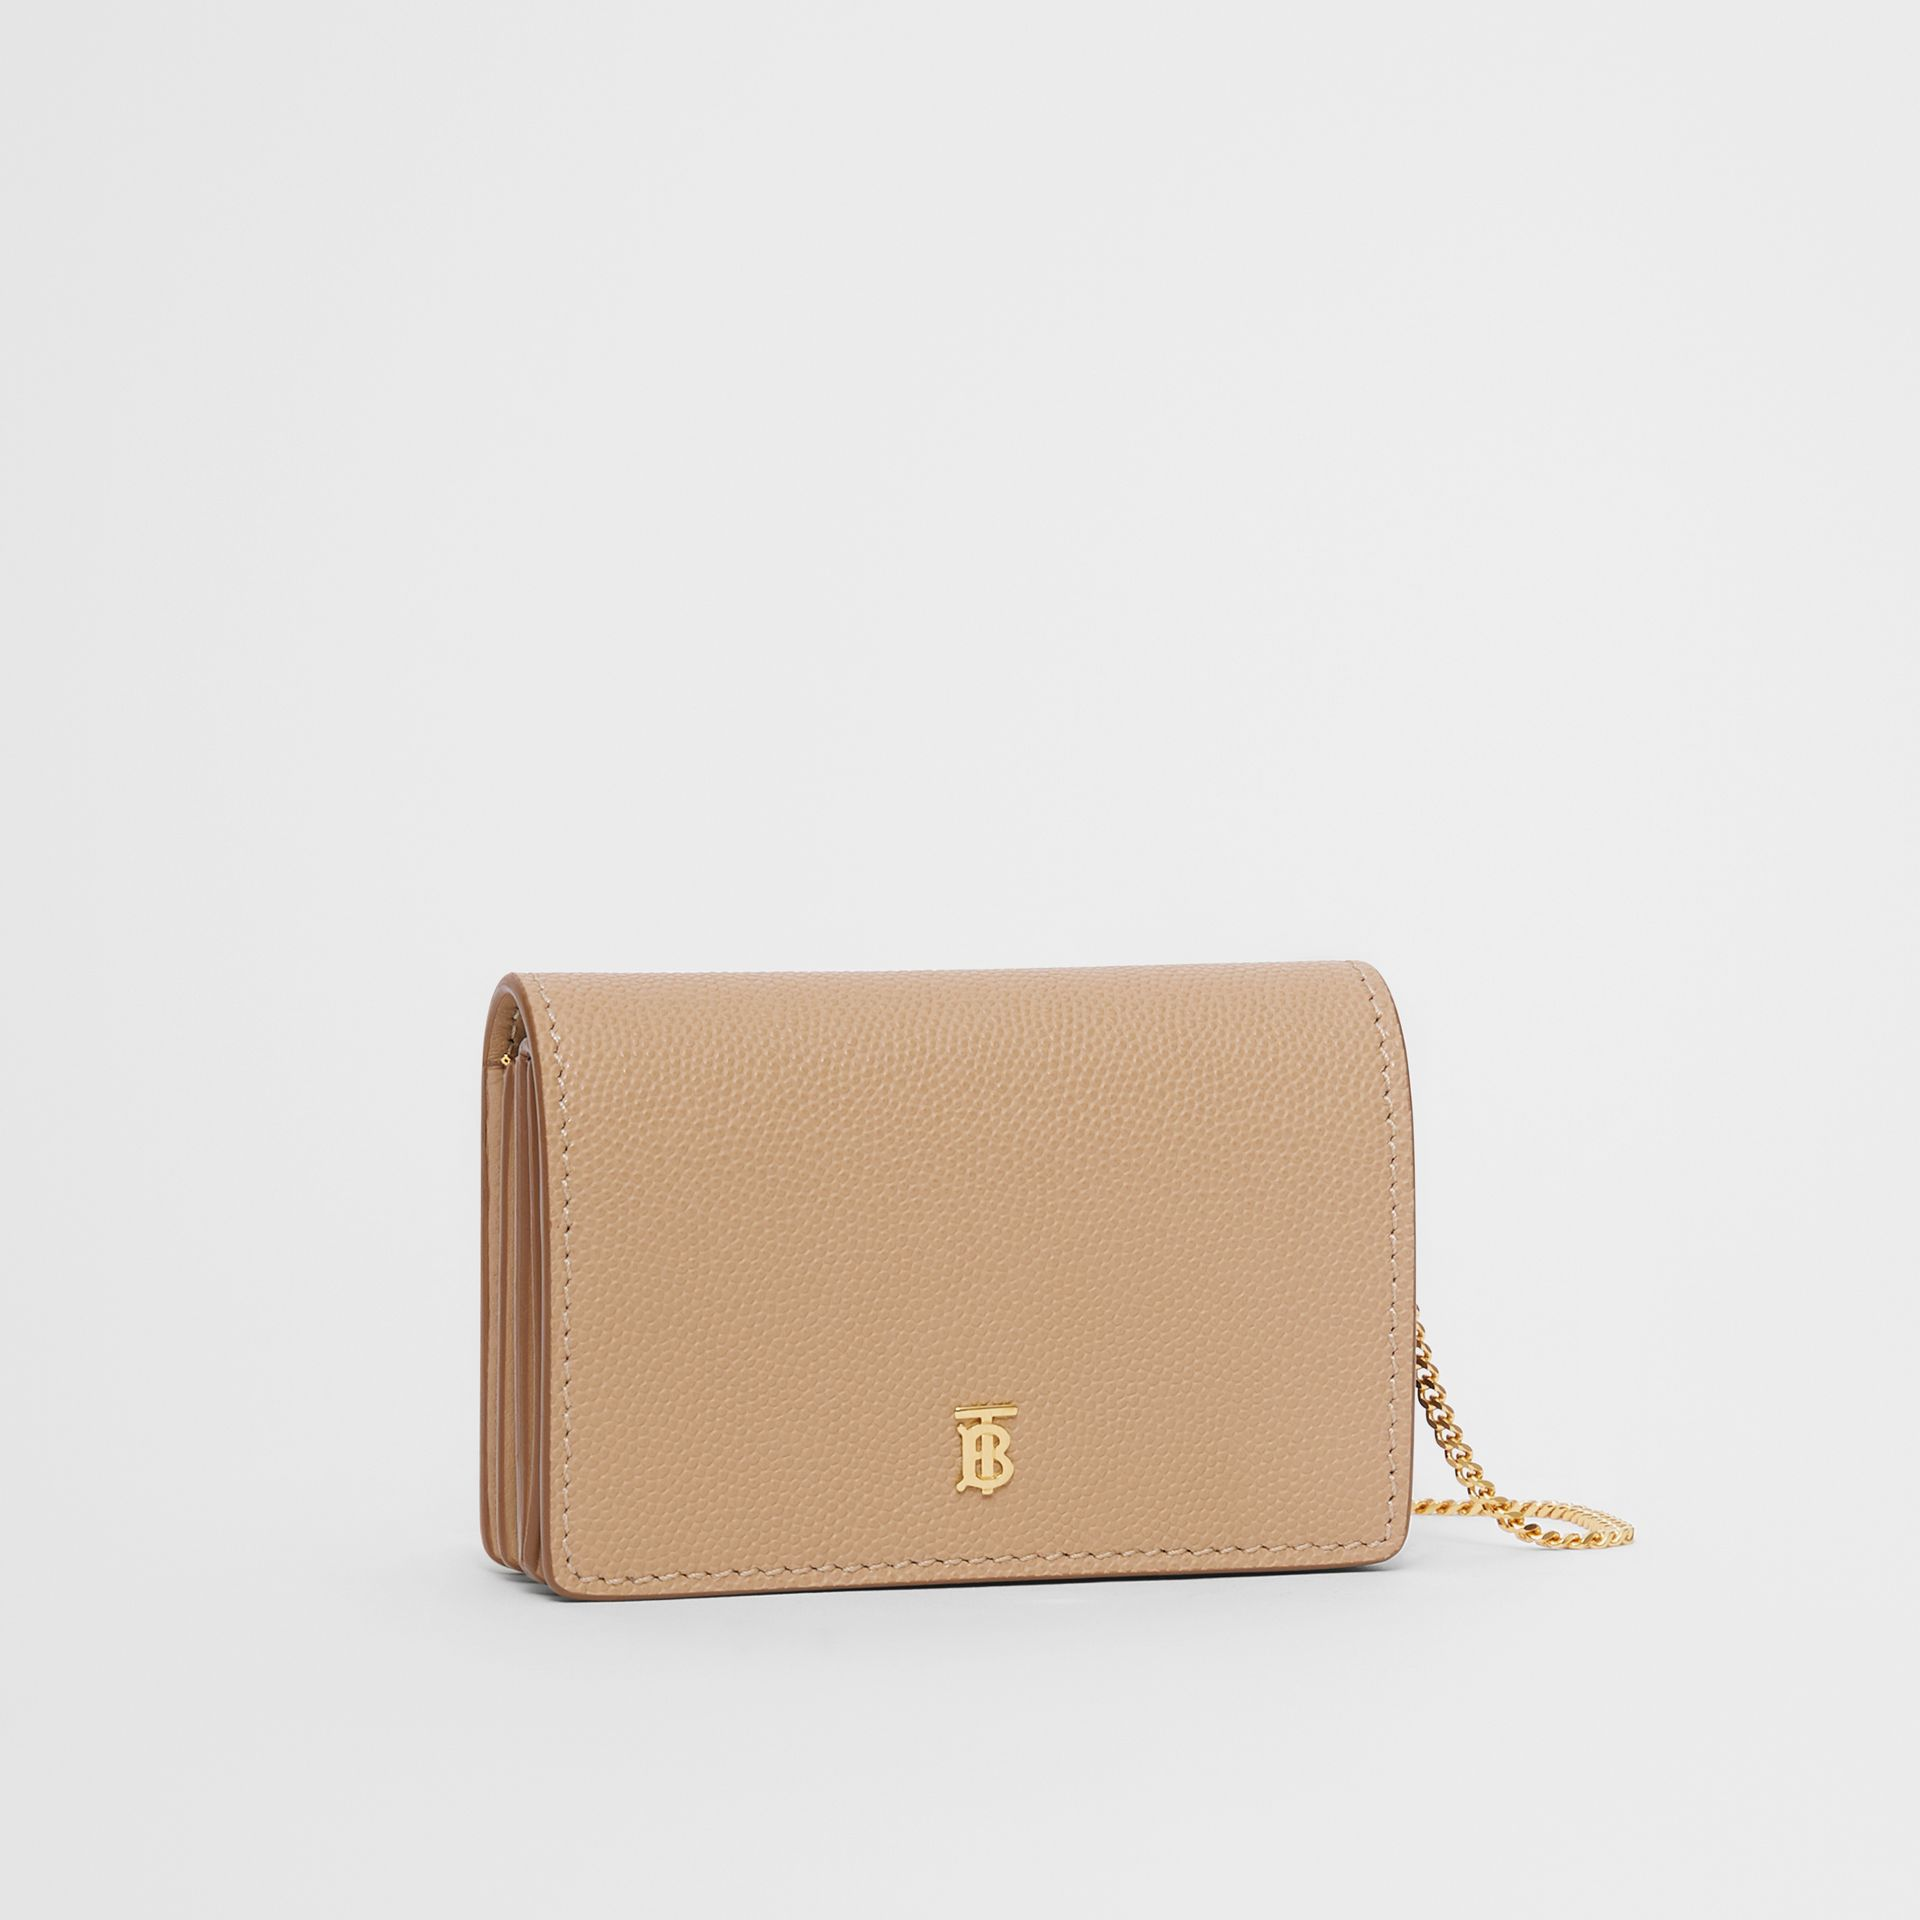 Grainy Leather Card Case with Detachable Strap in Archive Beige - Women | Burberry - gallery image 6